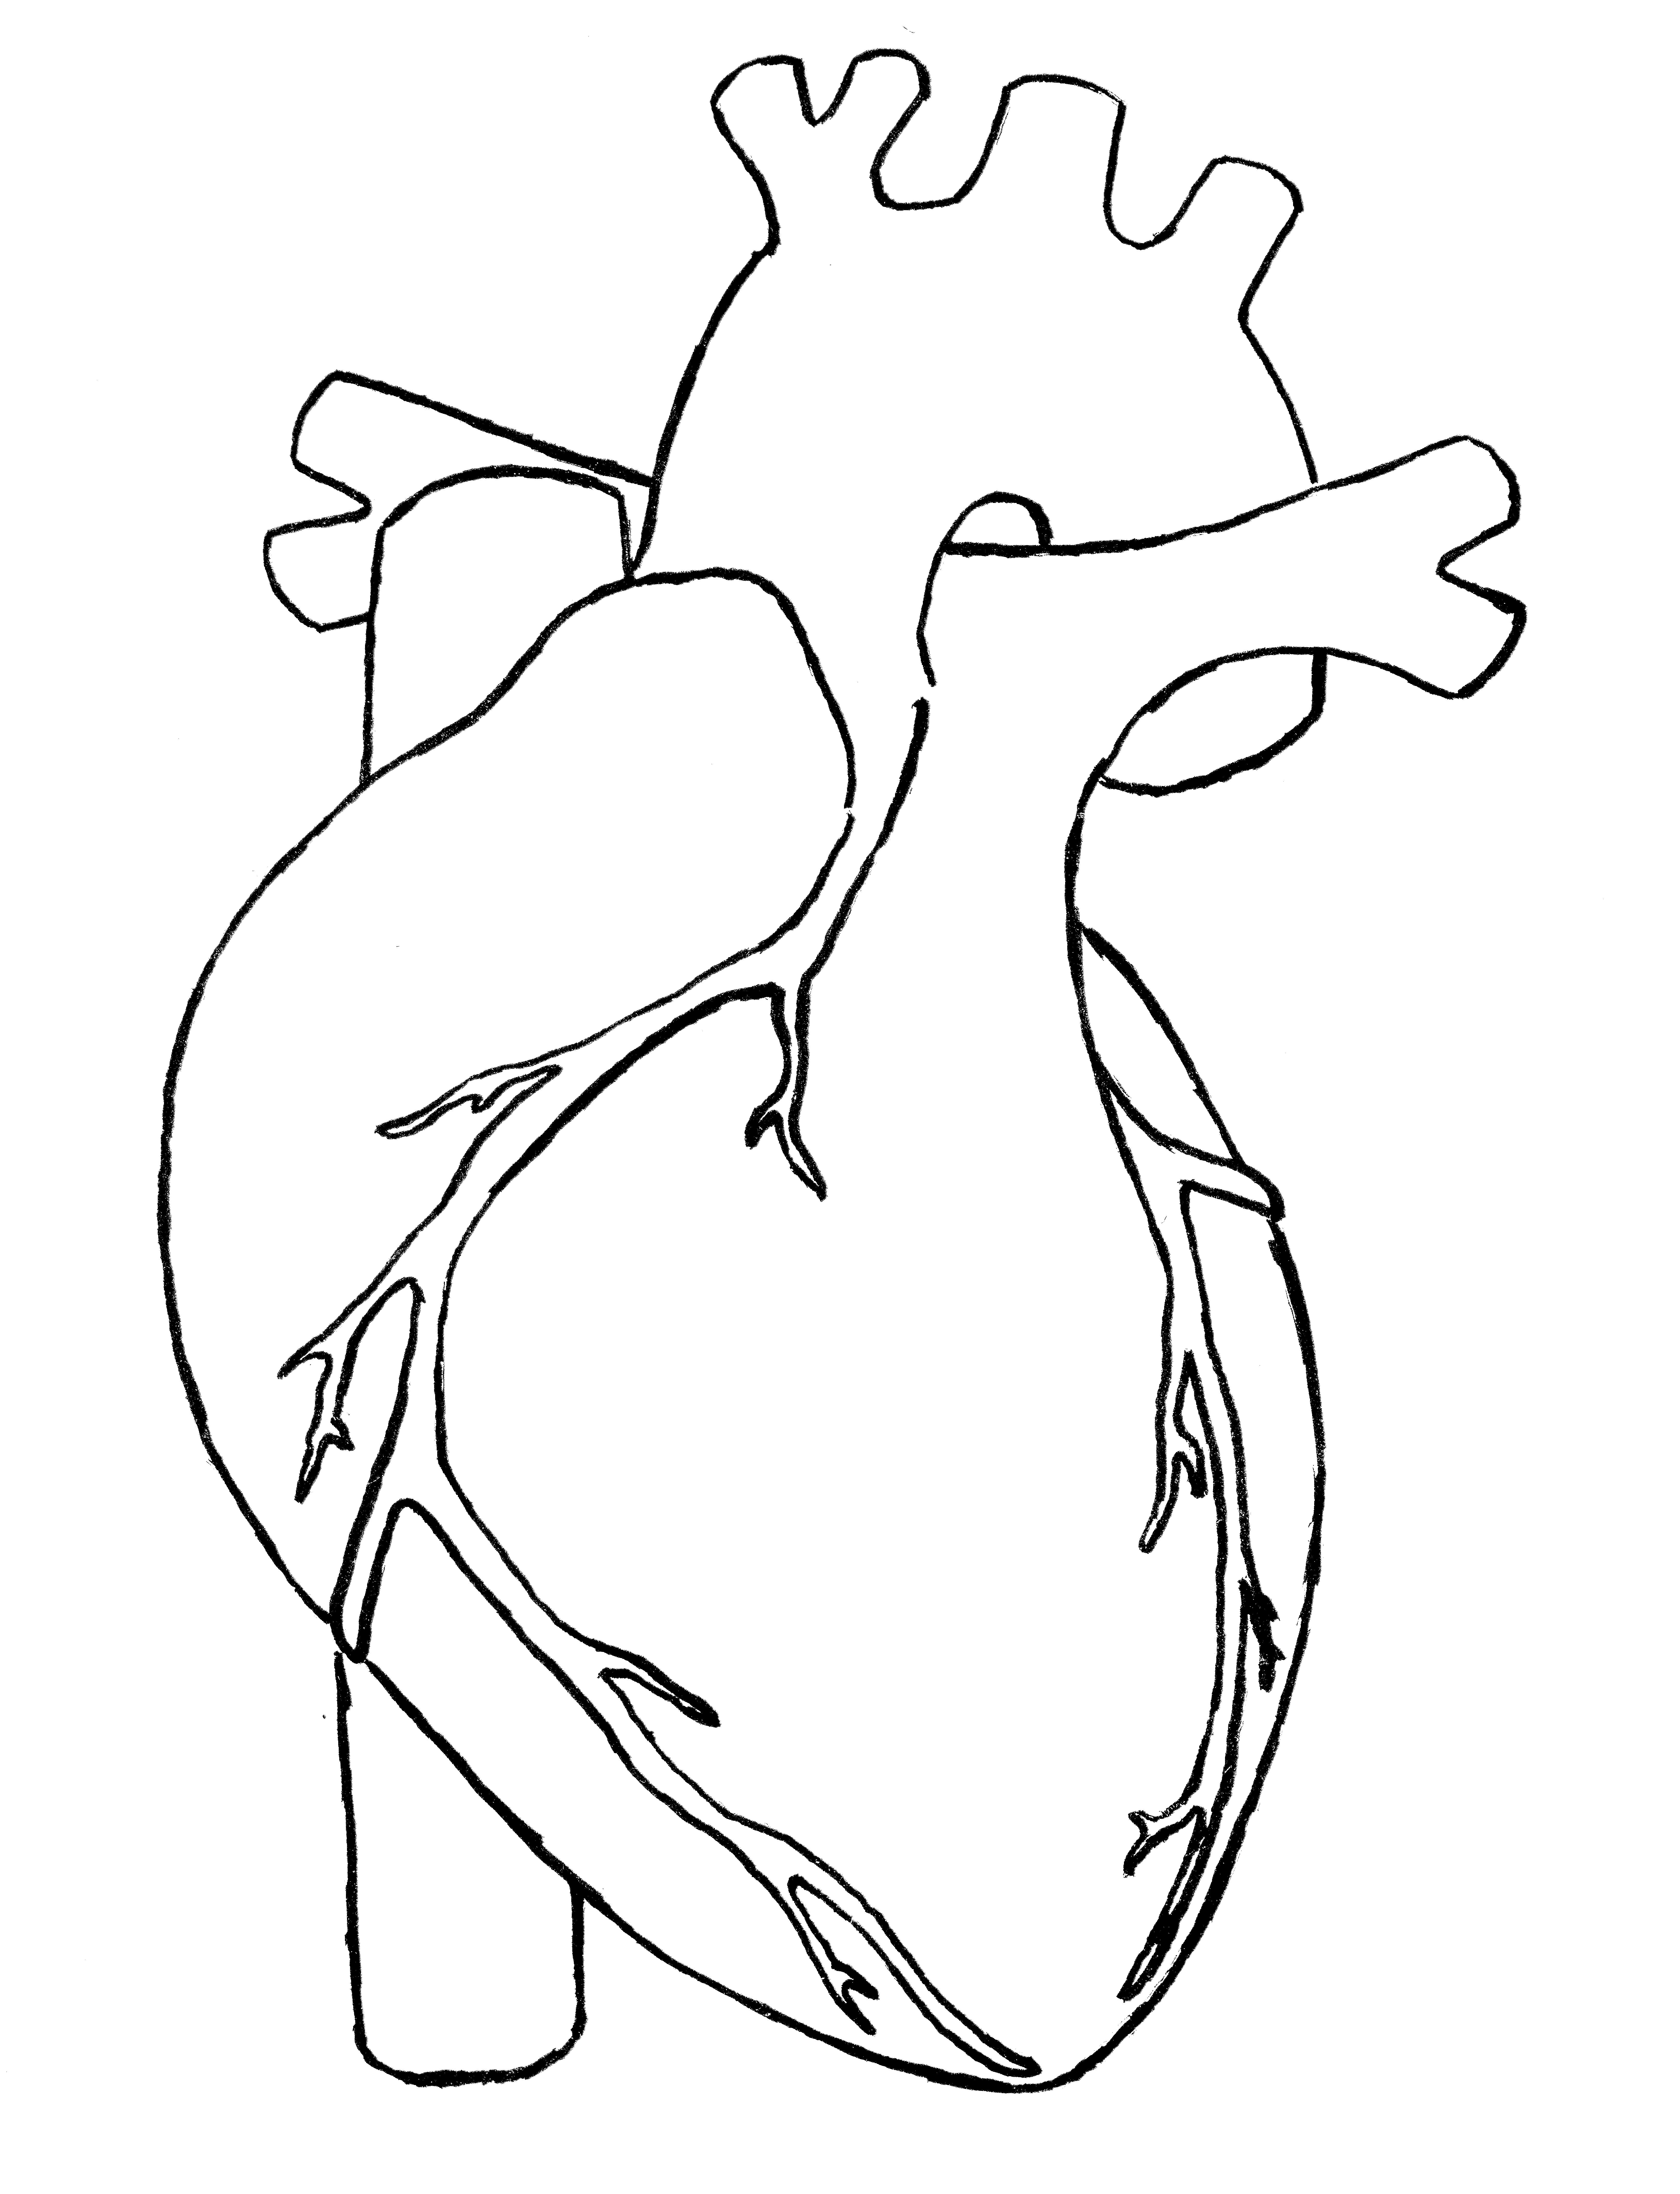 6517x8511 For You With Love Heart Patterns, Anatomical Heart And Patterns